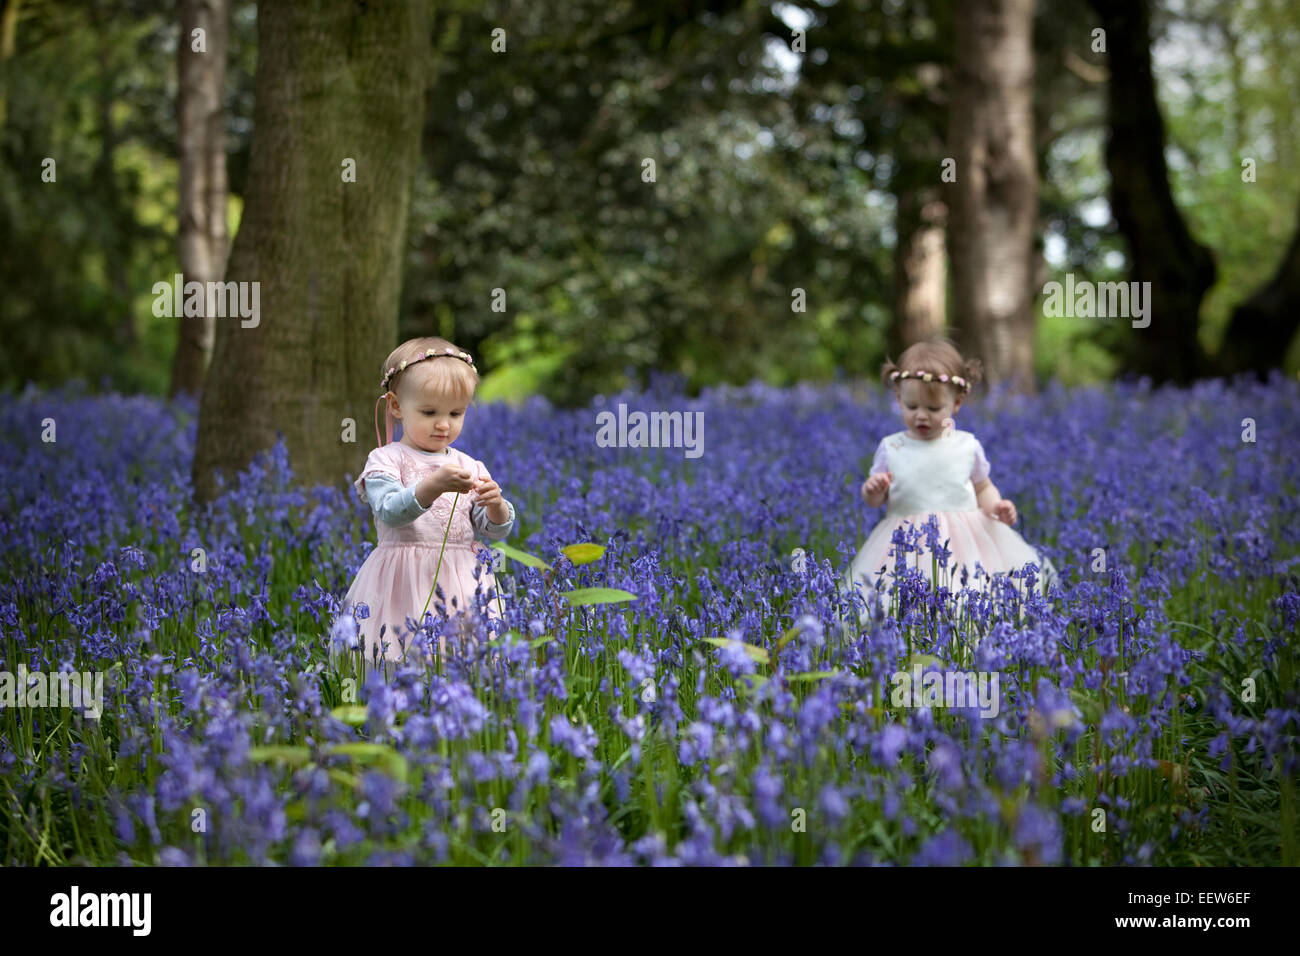 Two little girls exploring a wood full of wild bluebells in Spring. - Stock Image